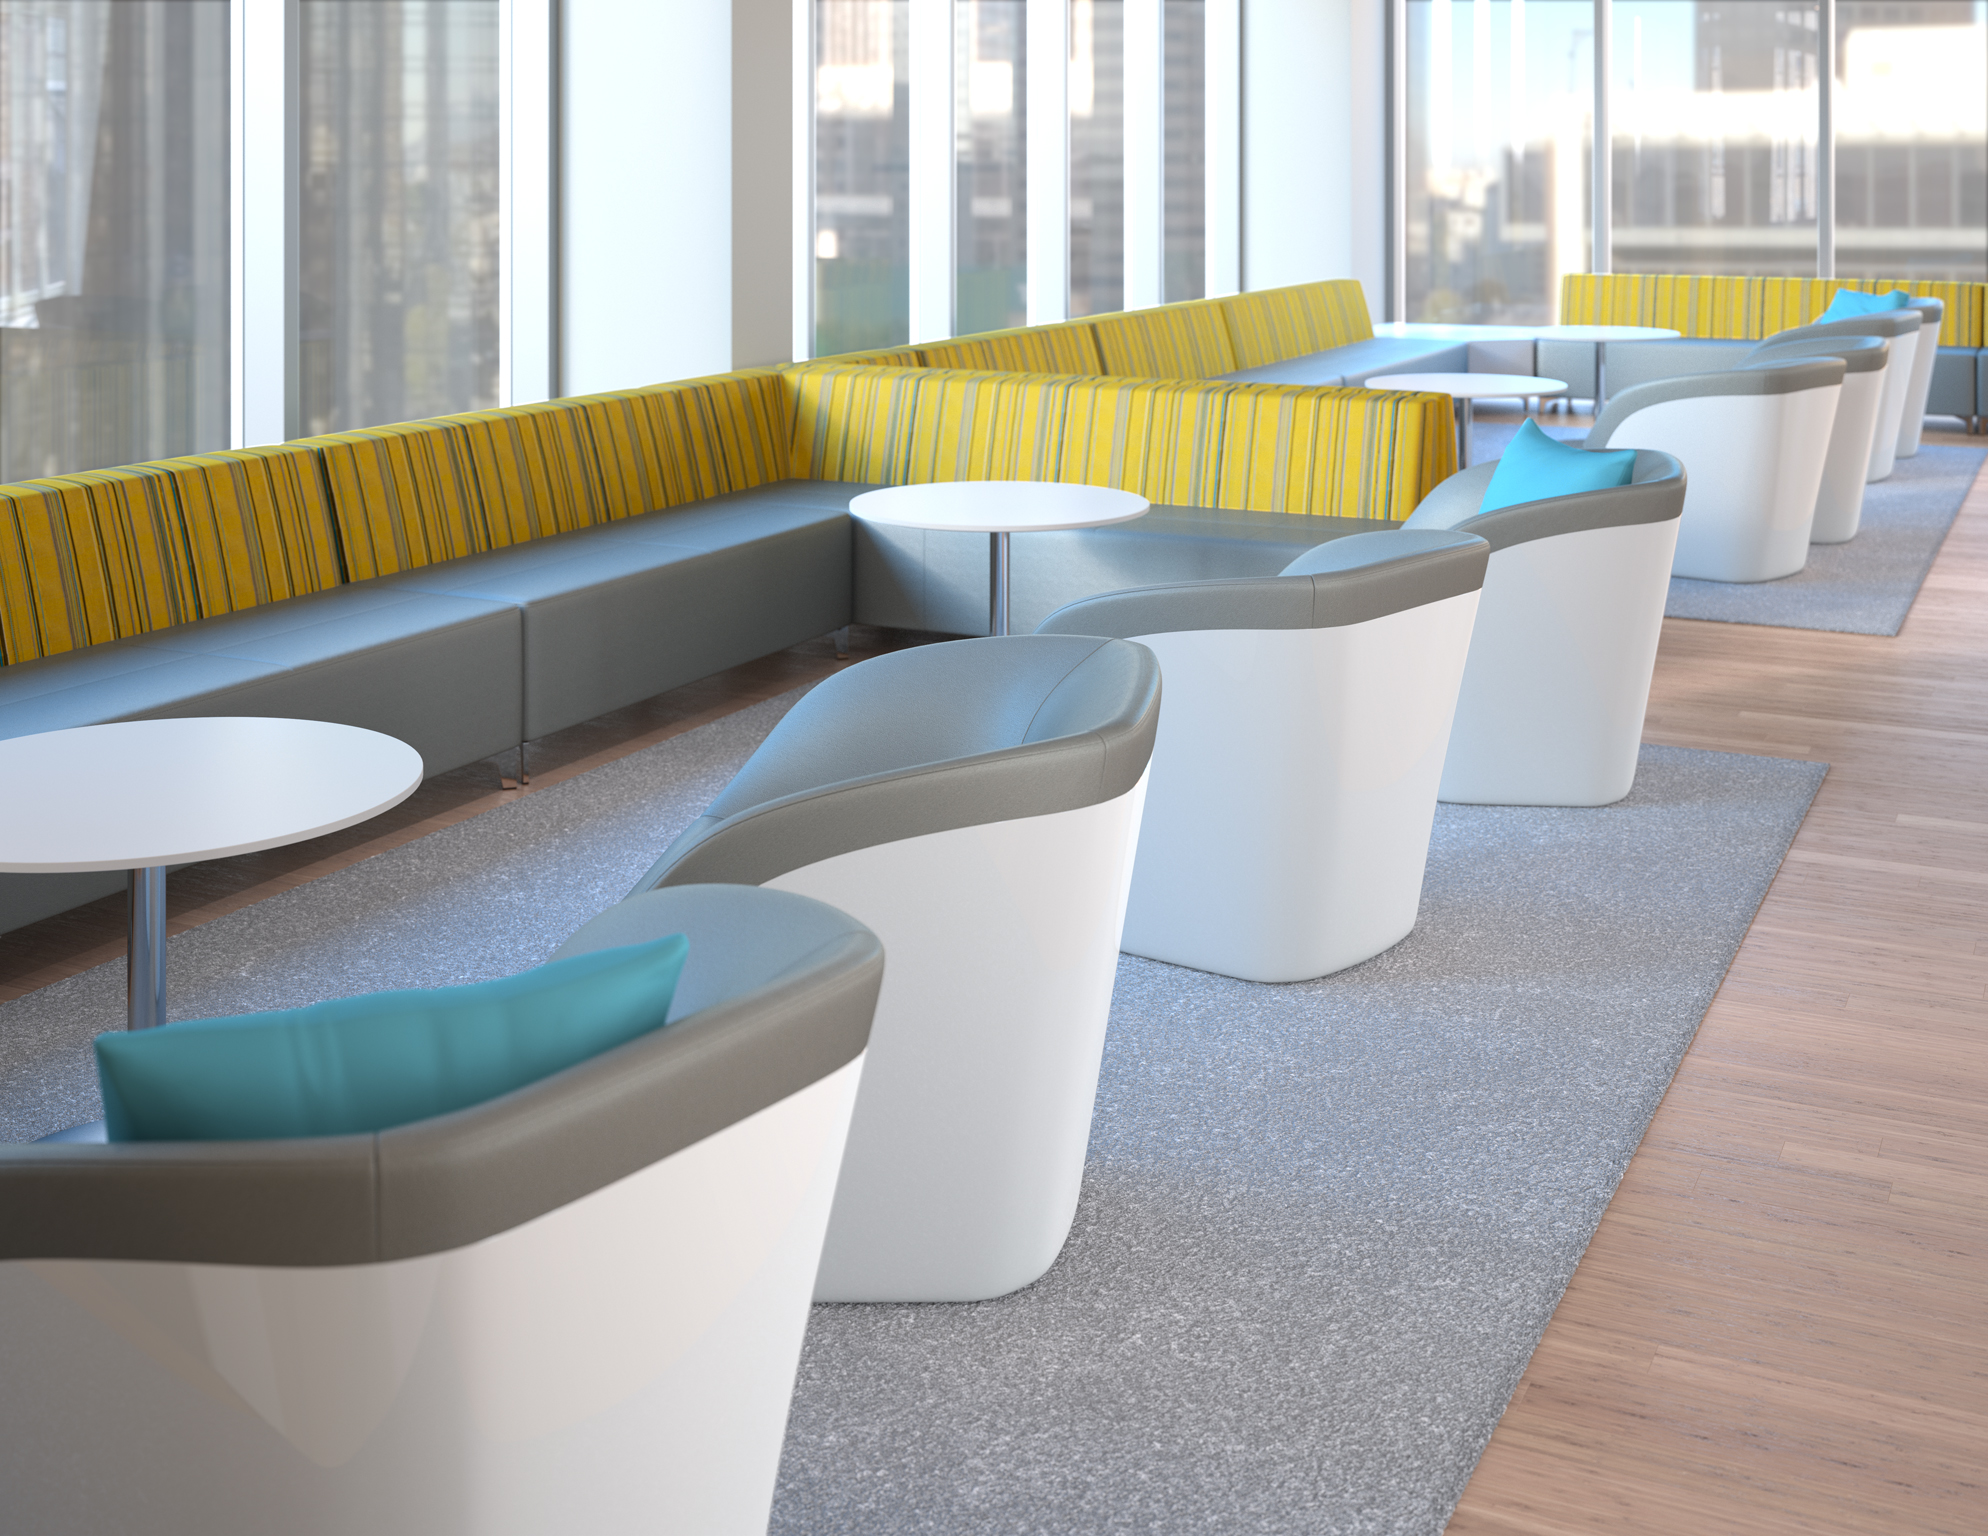 3d rendering of office breakout space furniture